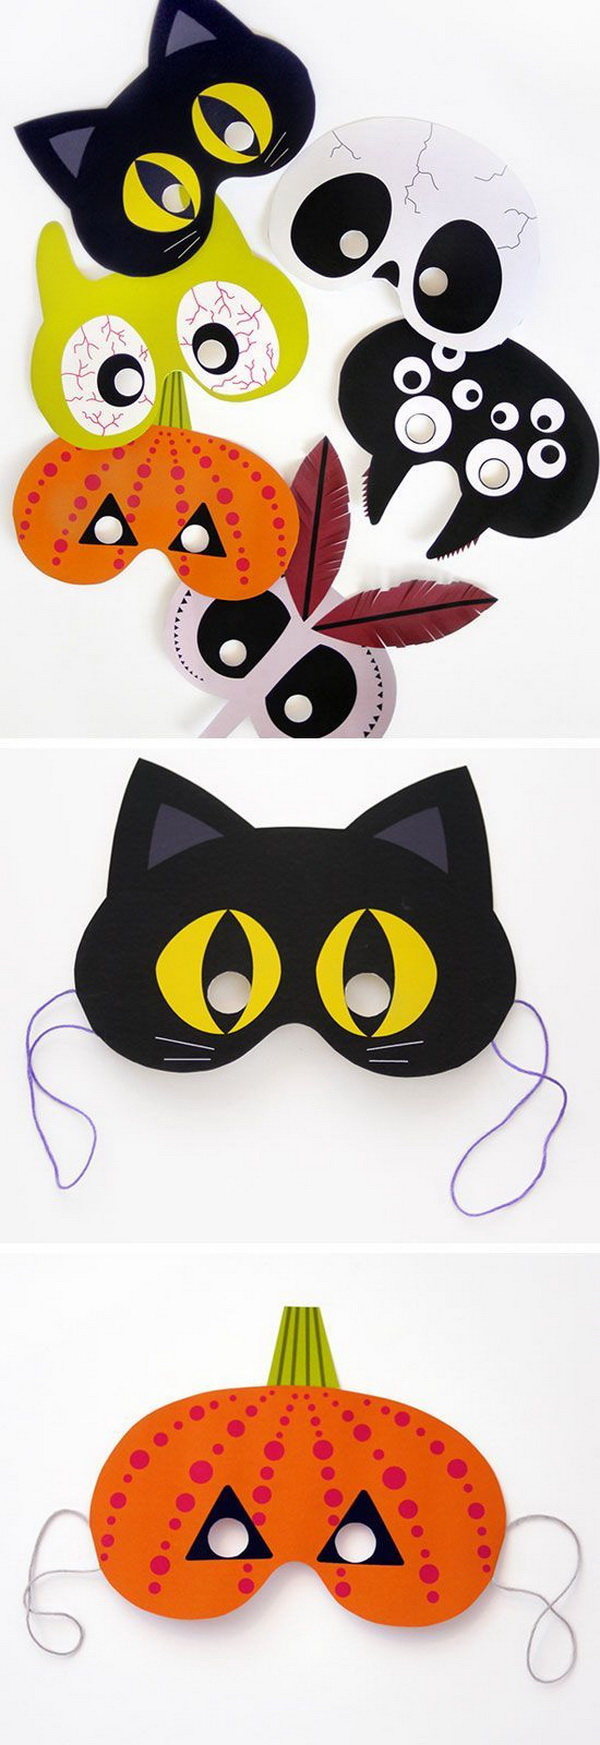 Printable Halloween Masks. Let your little ones creating these adorable masks for their own party. Fun and simple Halloween kids craft!